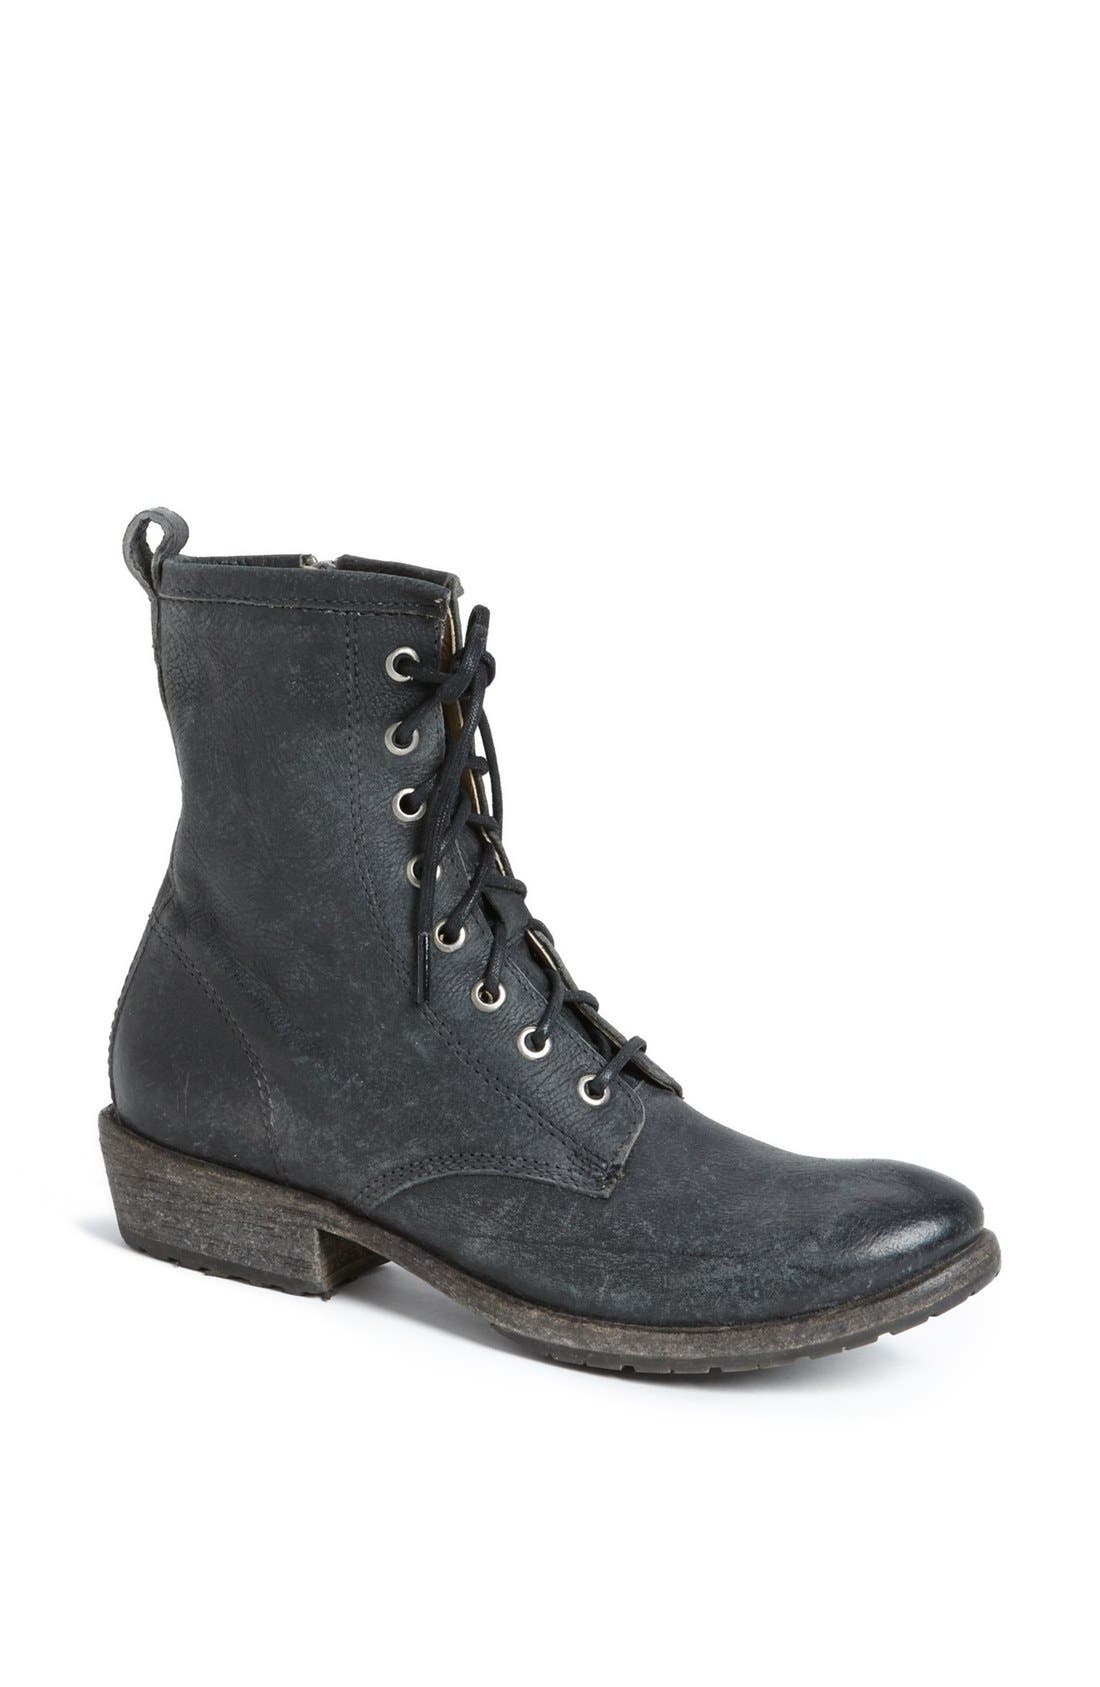 Main Image - Frye 'Carson' Lace-Up Bootie